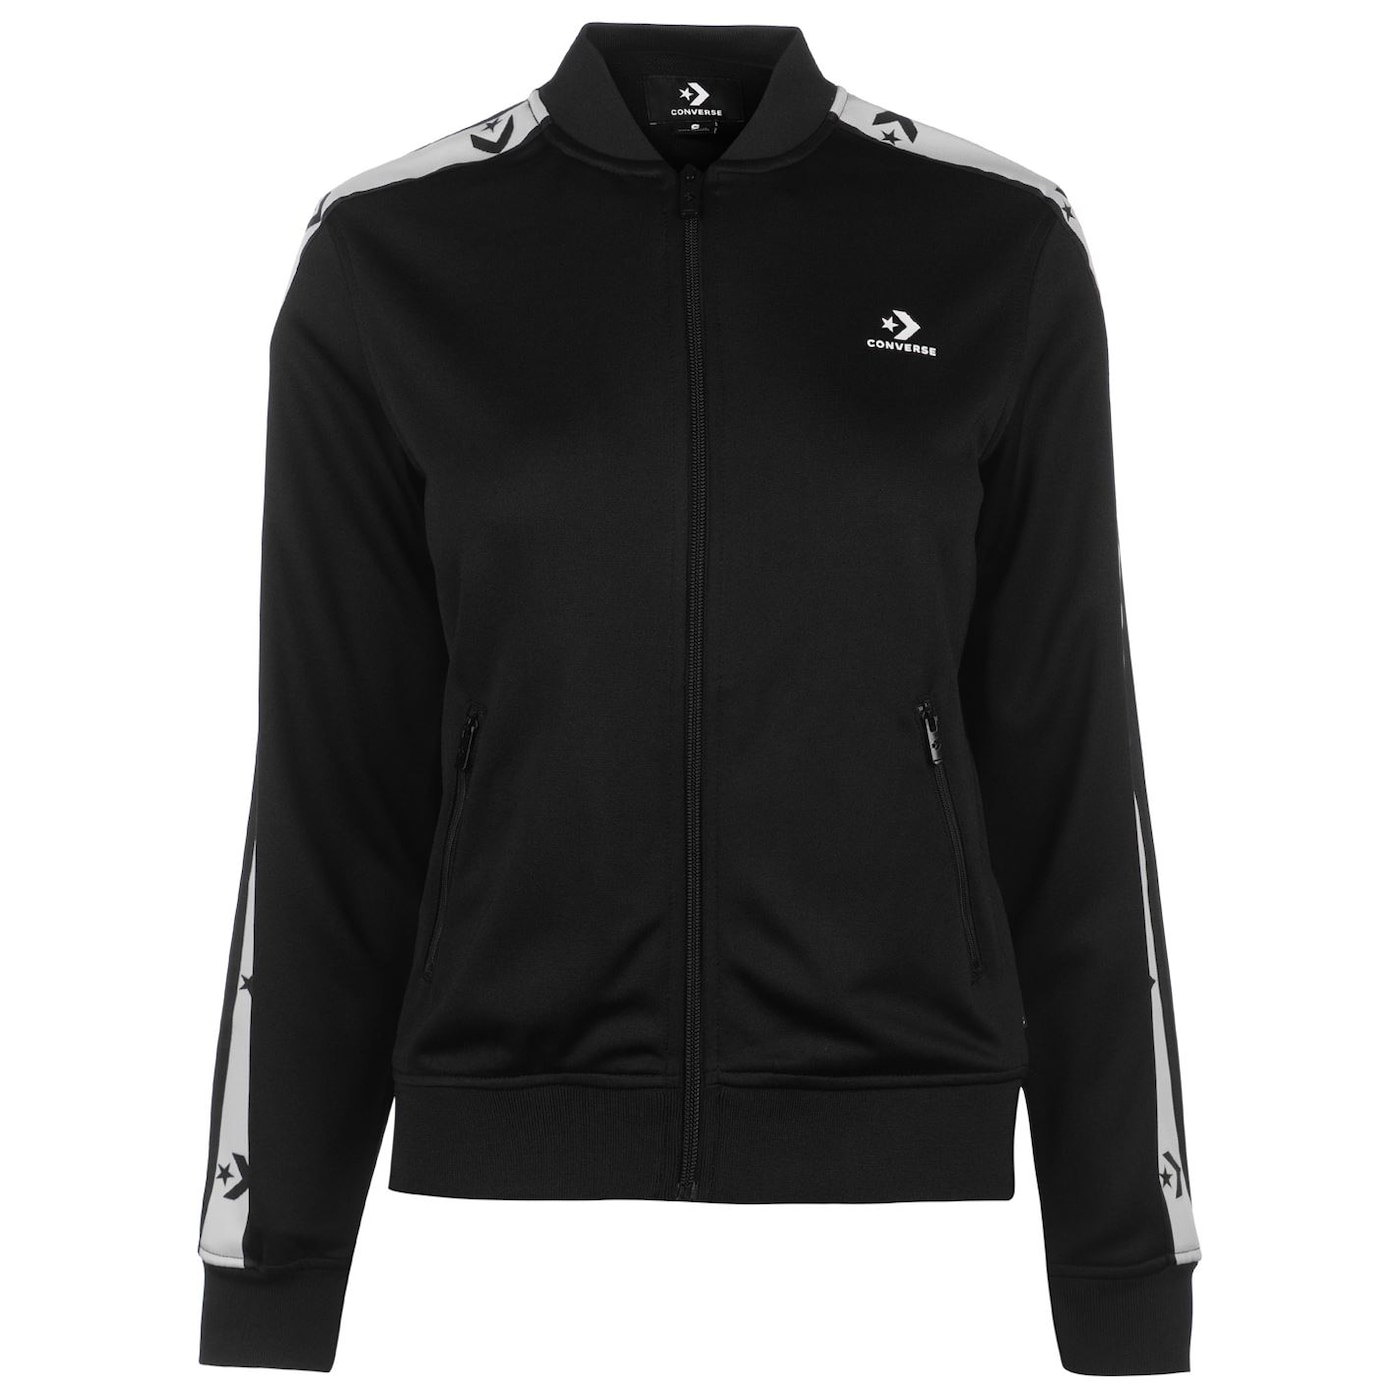 Converse Star Court Track Top